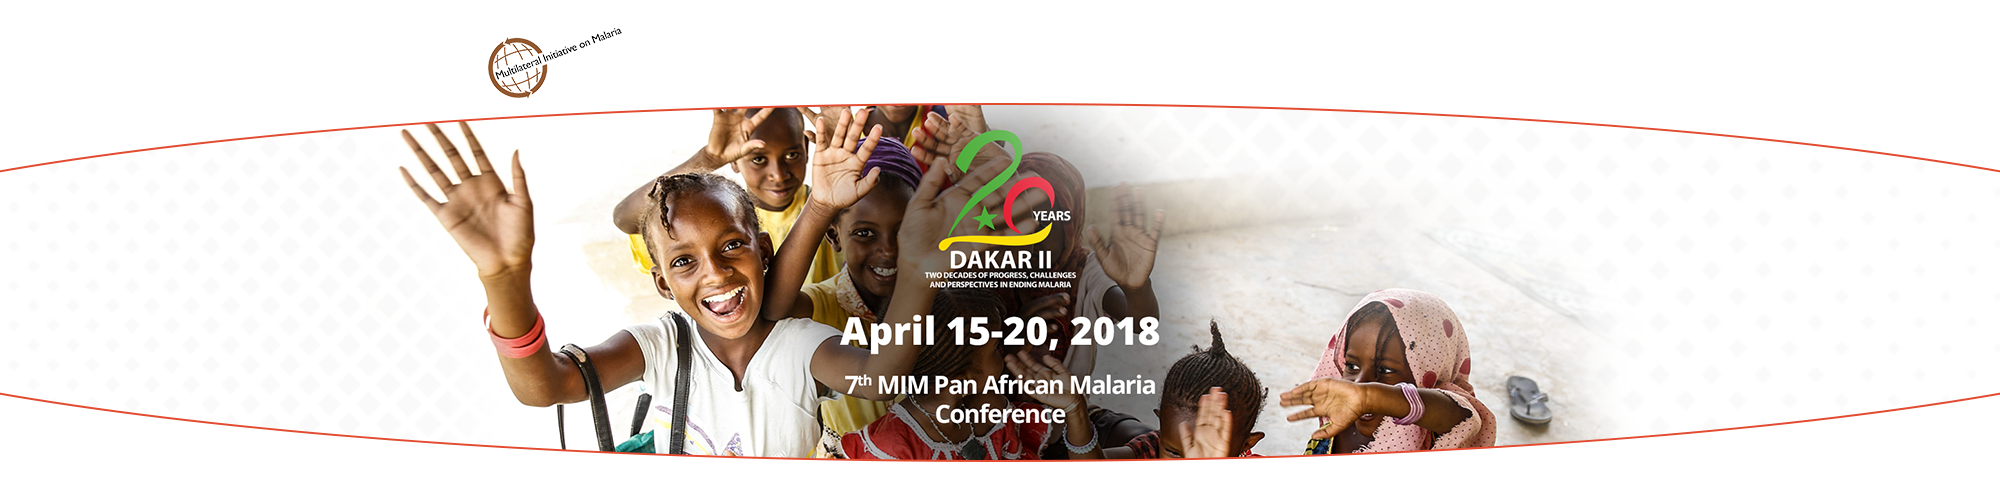 7th MIM Pan African Malaria Conference 2018